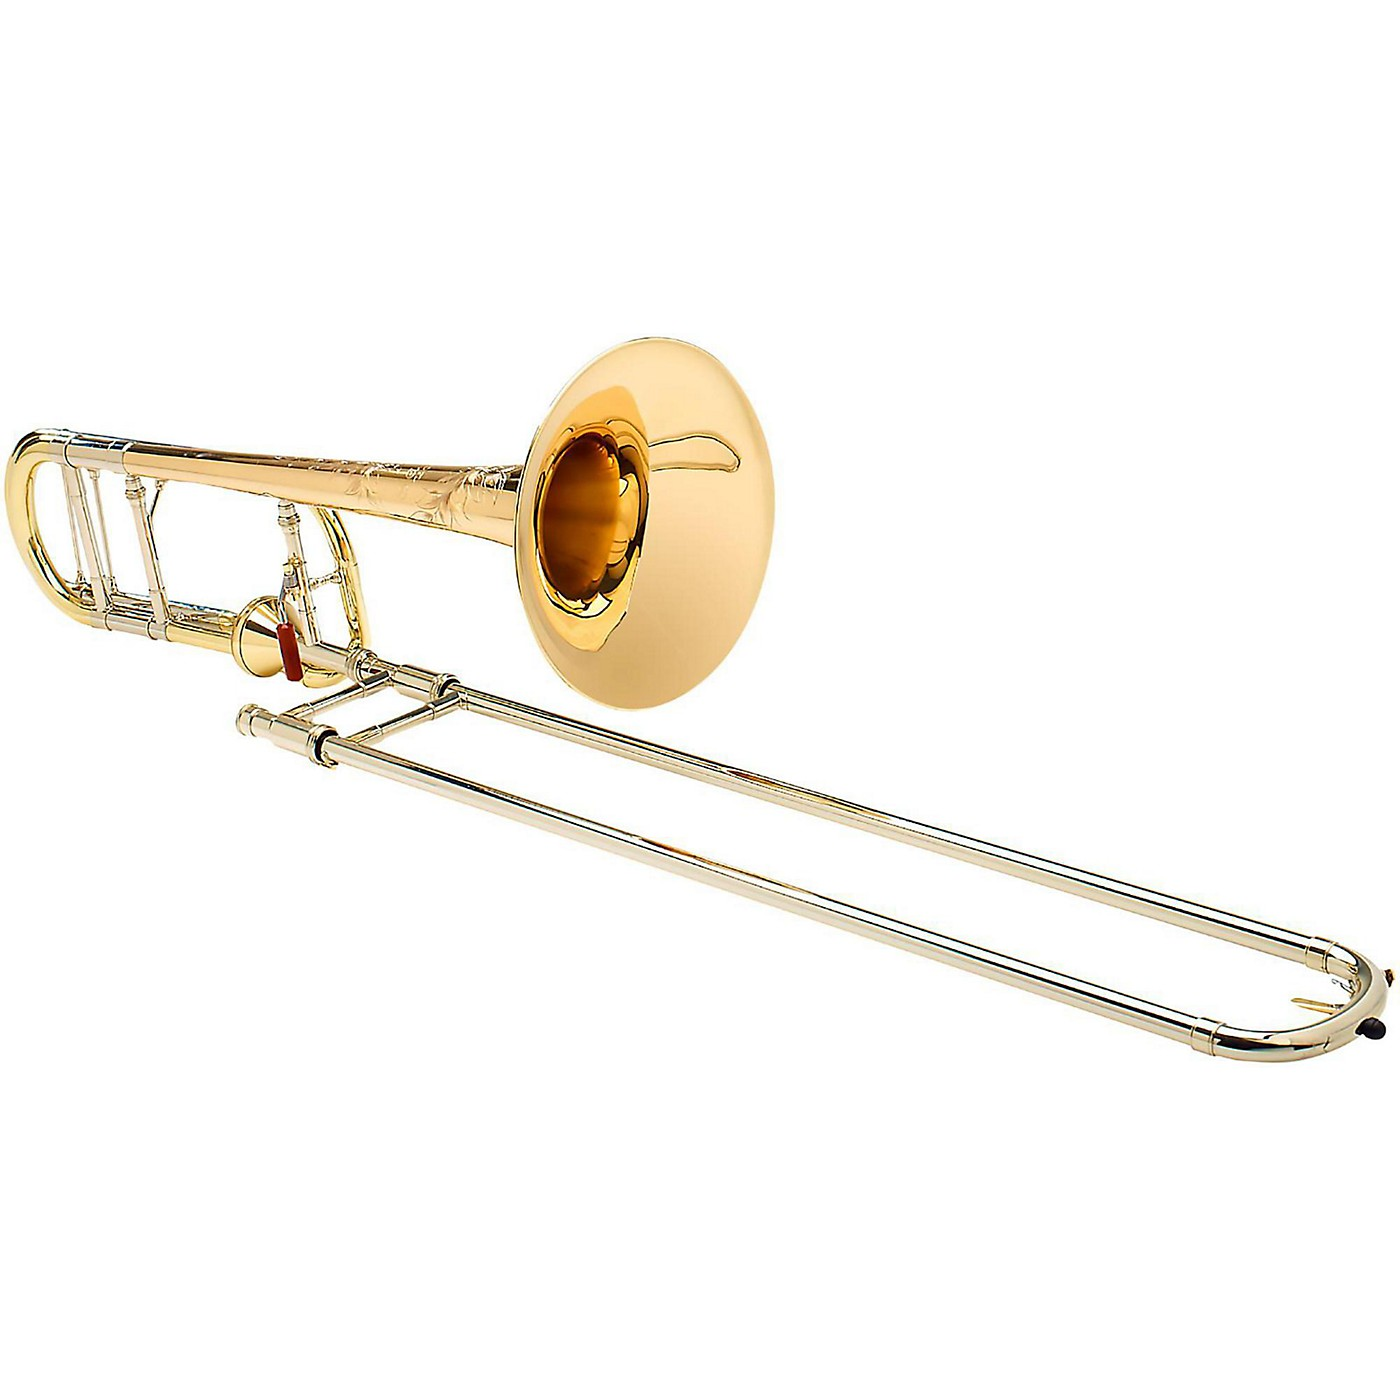 S.E. SHIRES Chicago Model Axial-Flow F Attachment Trombone thumbnail